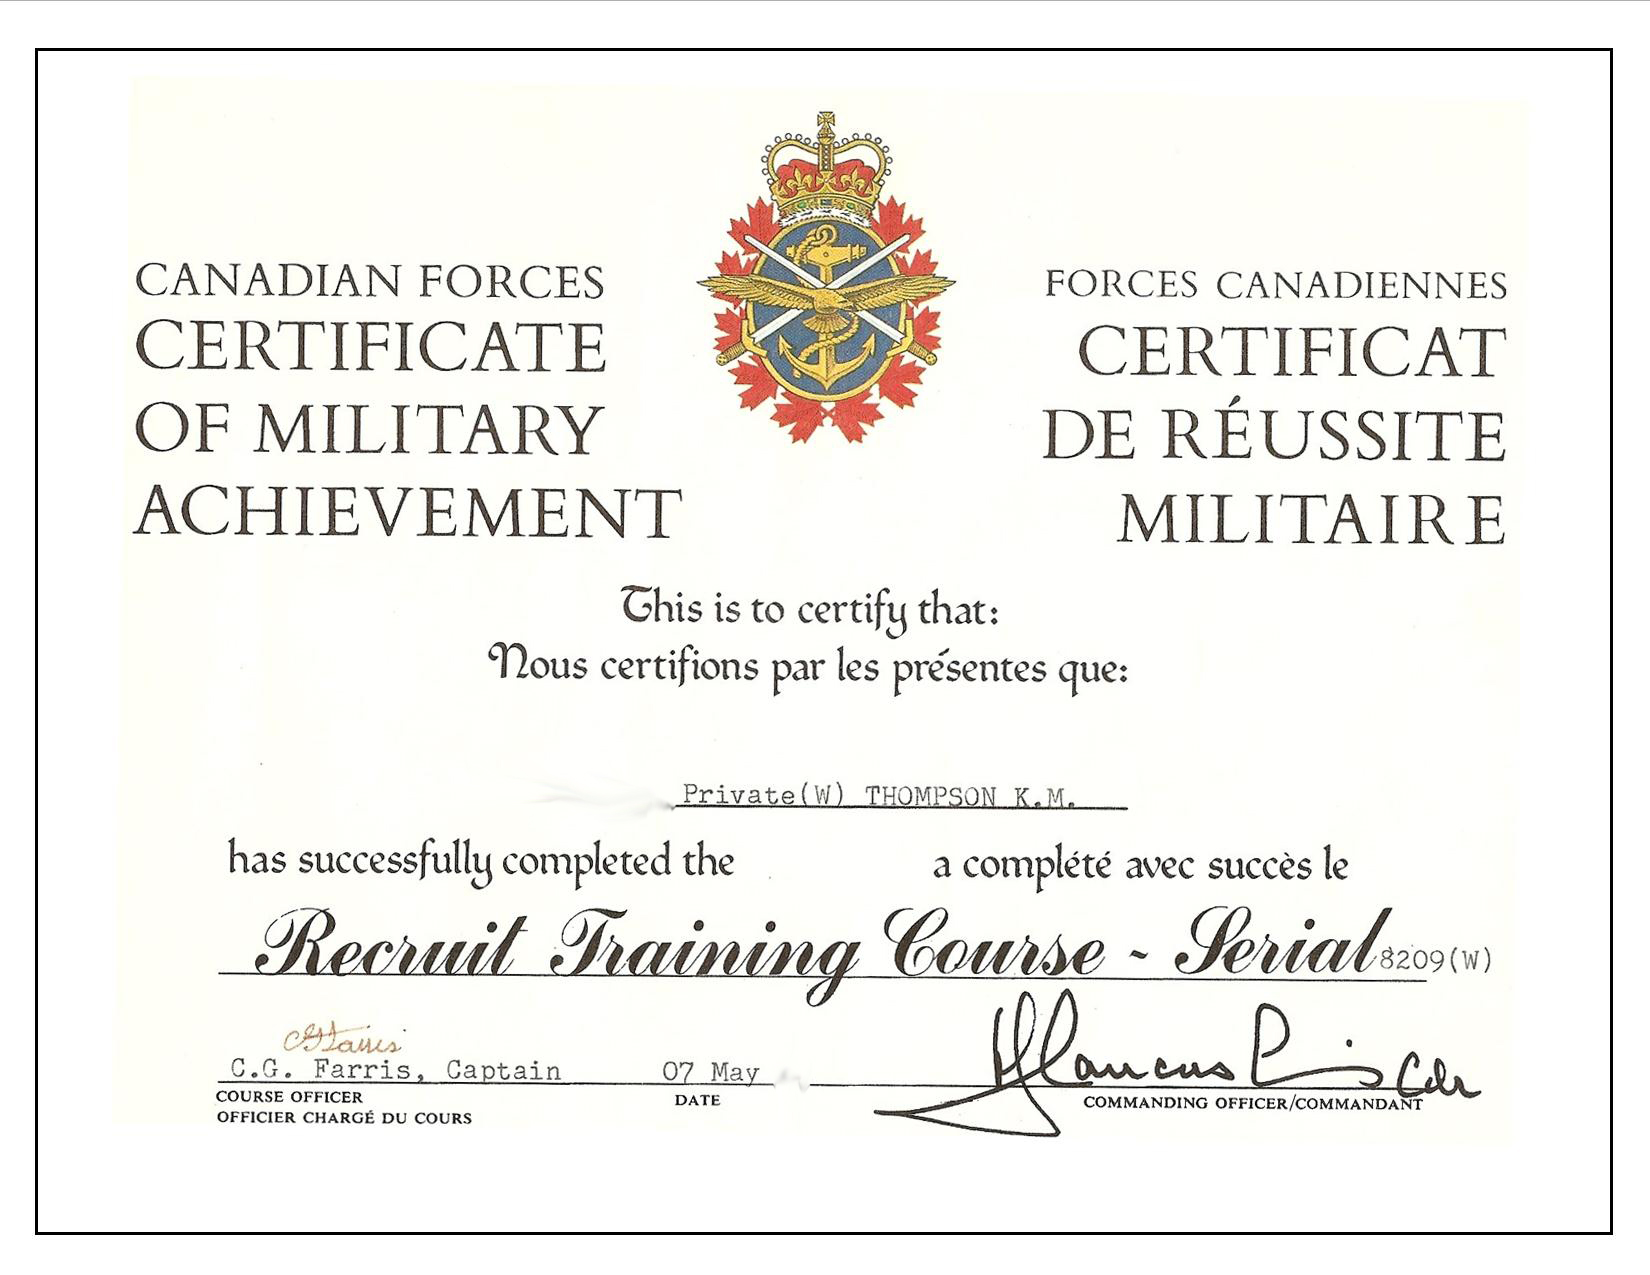 RCAF - Basic Training xsi.jpg